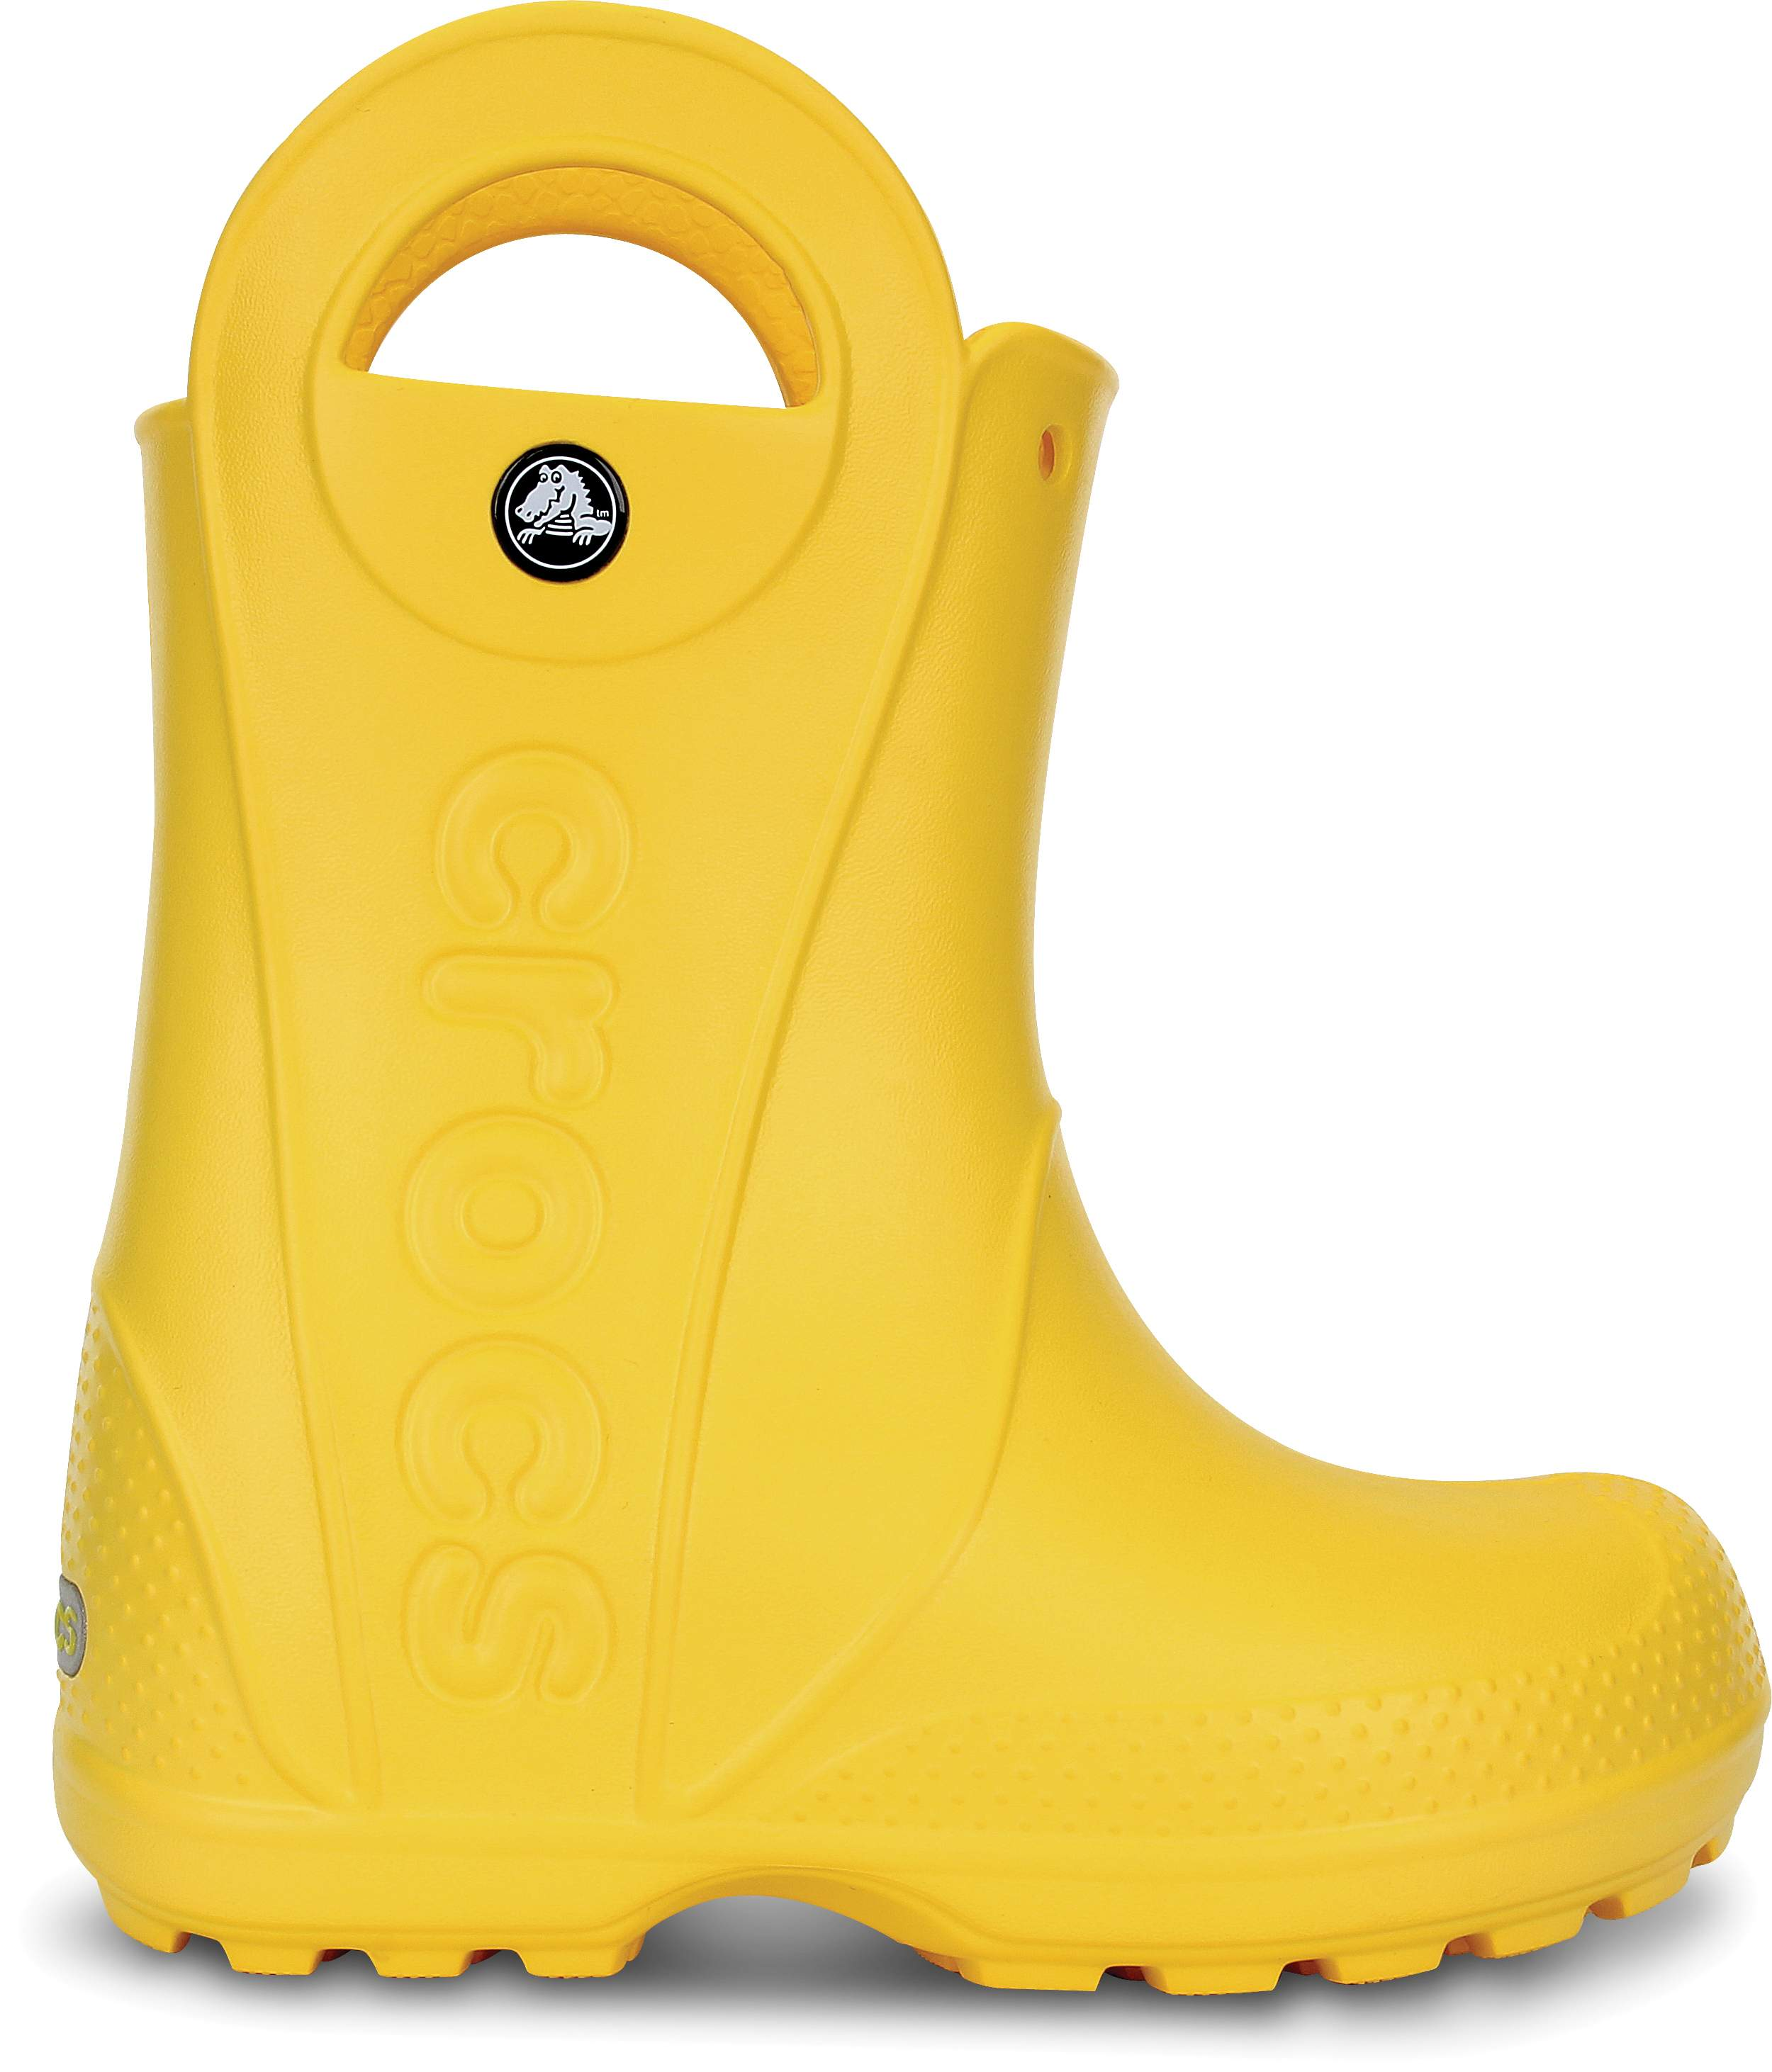 Crocs™ Kids' Handle It Rain Boot | Kids' Rain Boots | Crocs ...